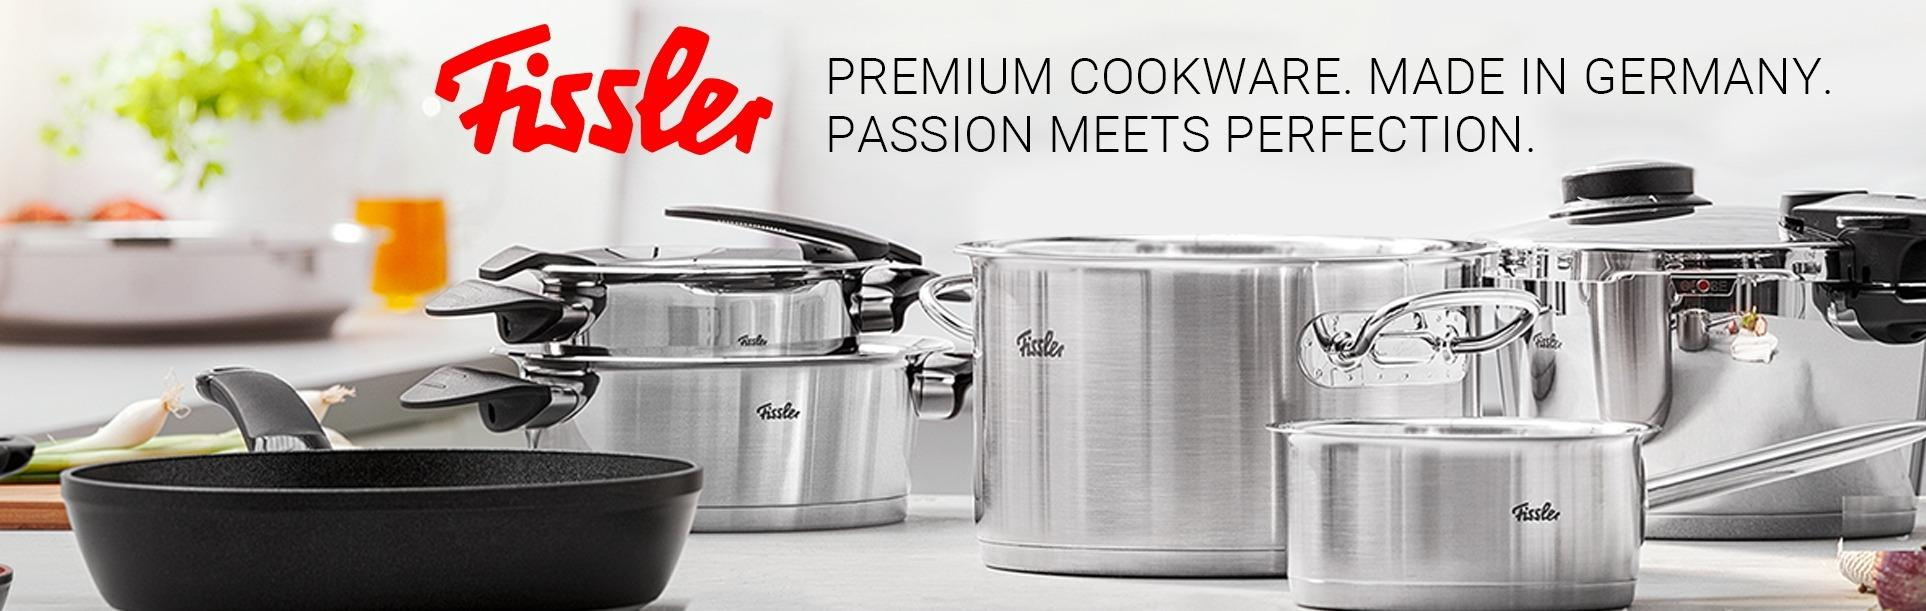 Fissler lifestyle products slide 2